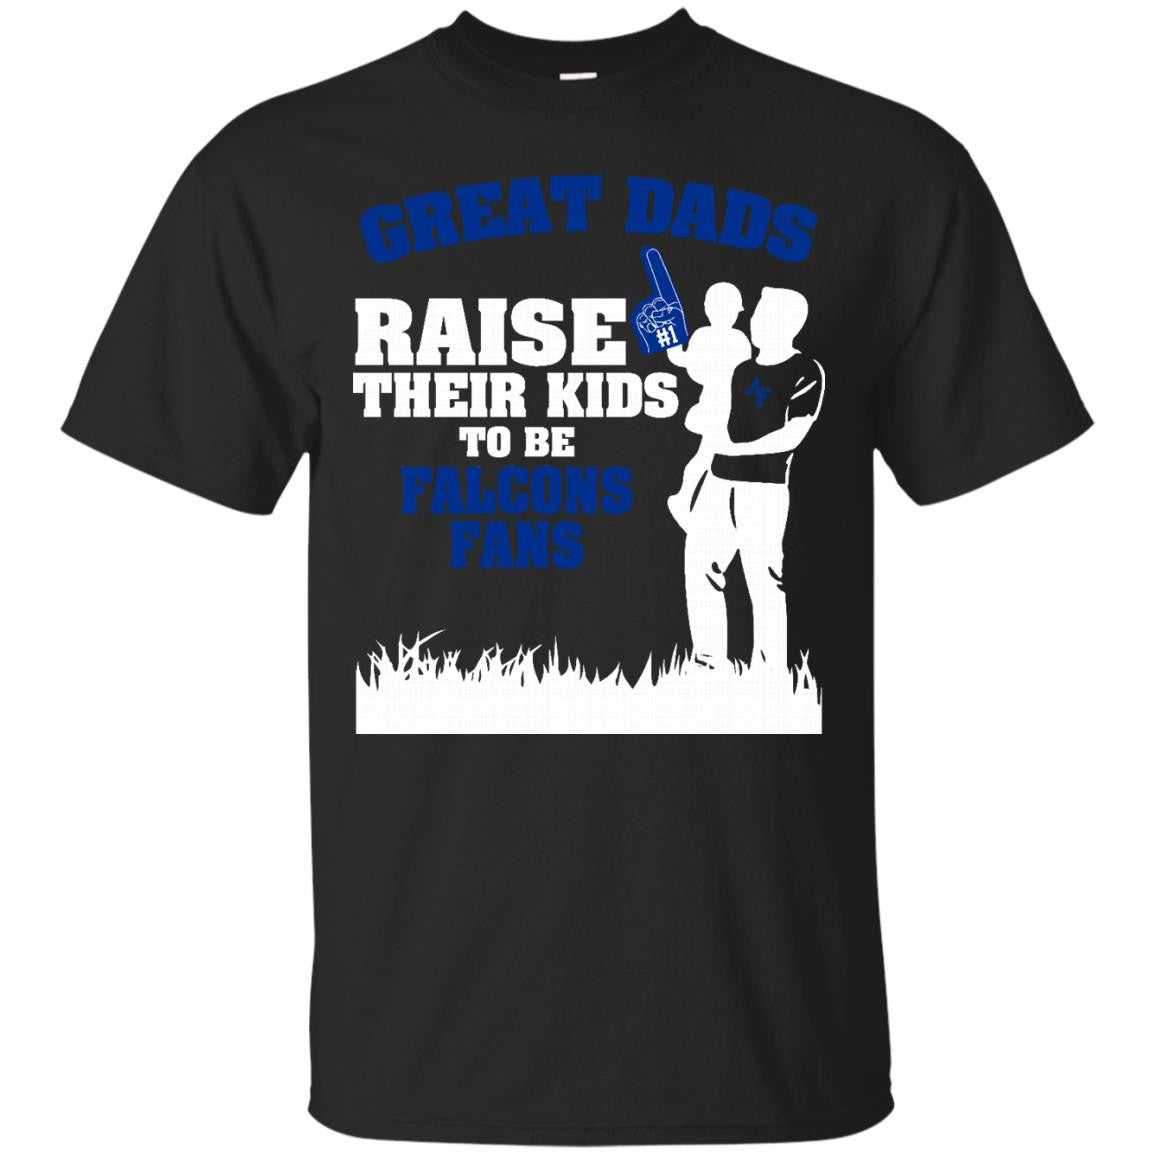 Air Force Falcons T shirts Great Dads Raise Their Kids To Be Falcons Fan Hoodies Sweatshirts